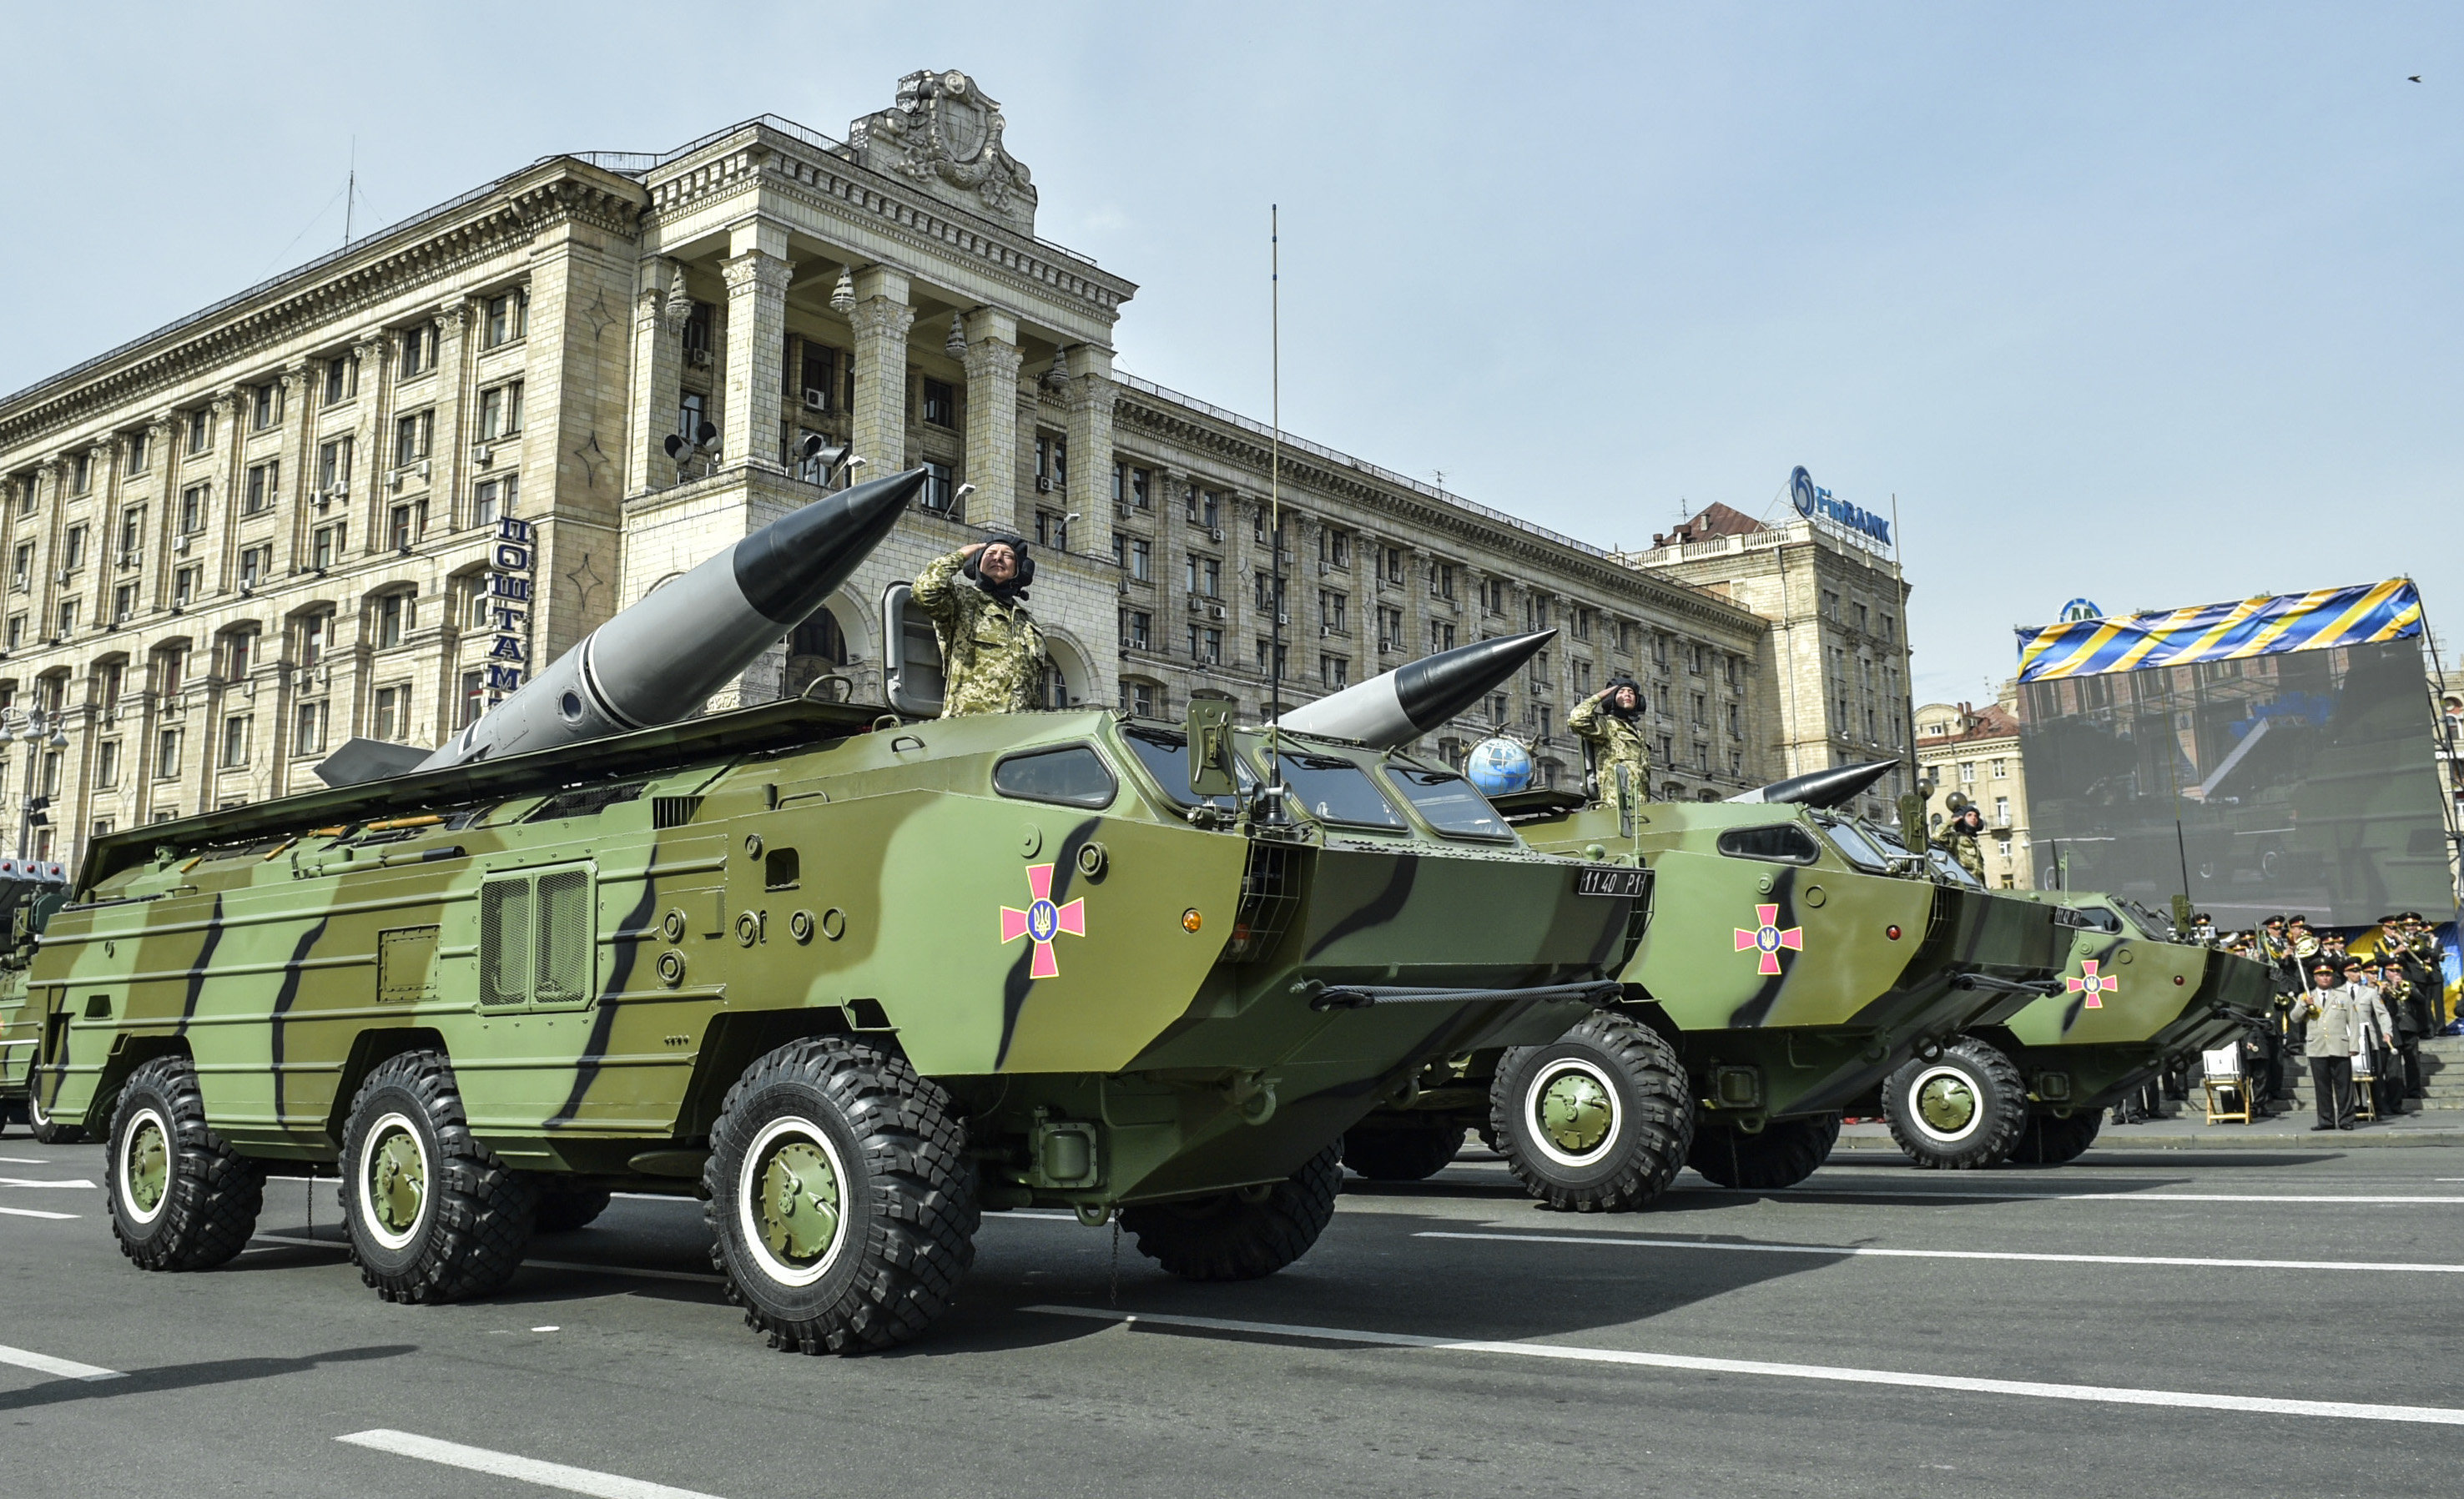 The Soviet-era 9K79 Tochka-U SRBM system, currently the mainstay of the Ukrainian army's missile systems.